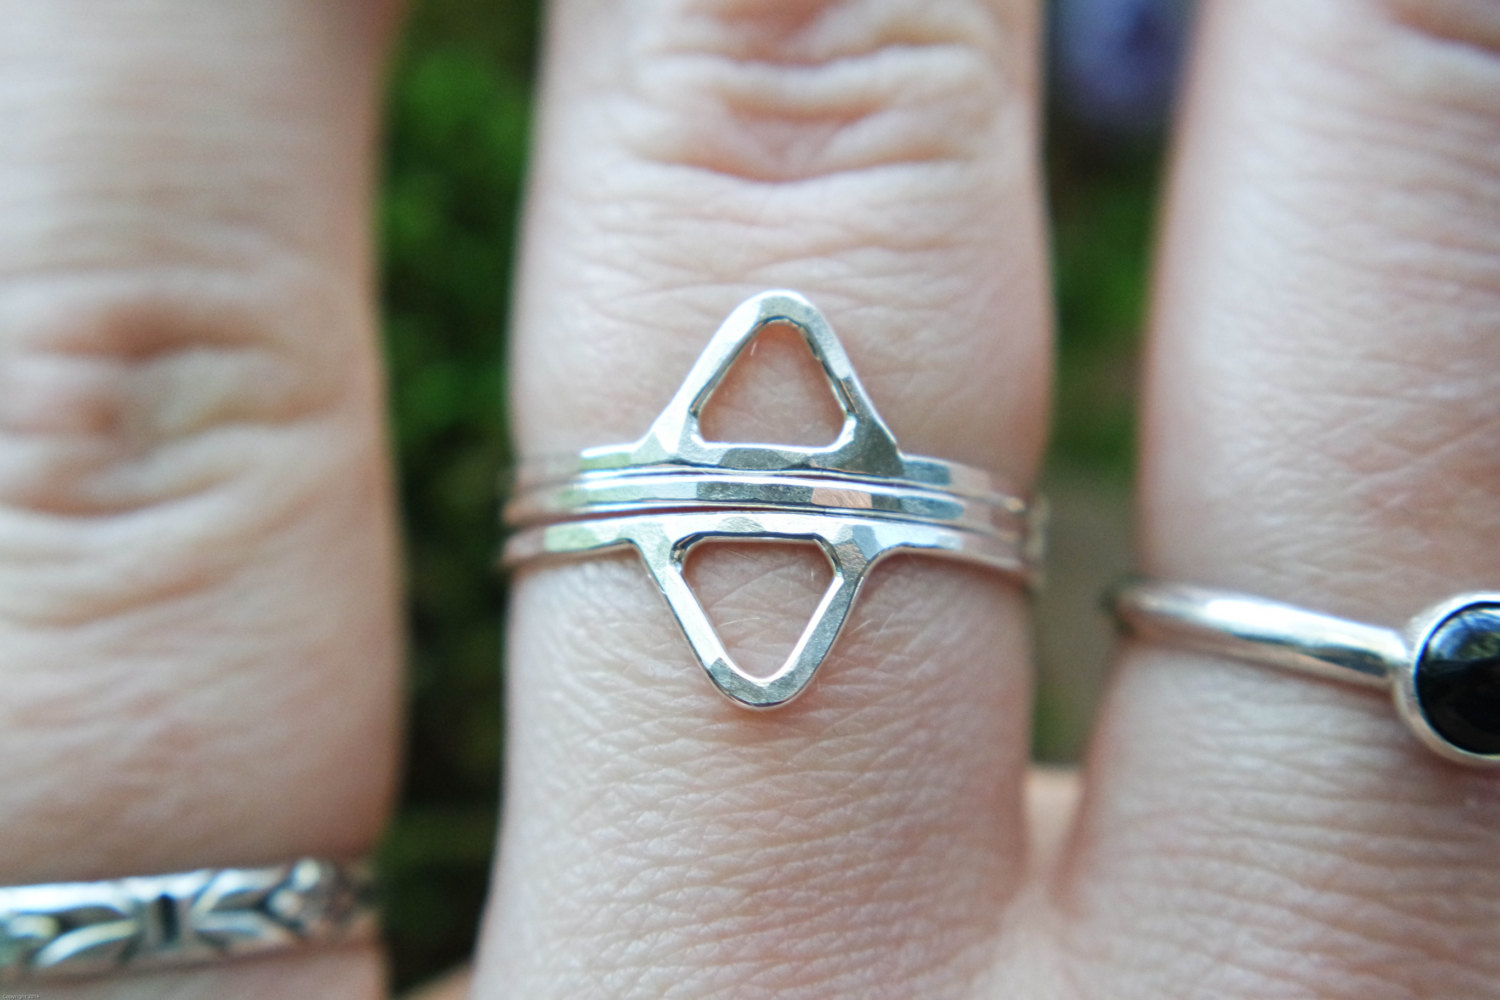 3 Piece Triangle Ring SetHammered Triangle Stacking Ring SetSterling Silver Stacking RingSizes 4-9.5Stacking Ring